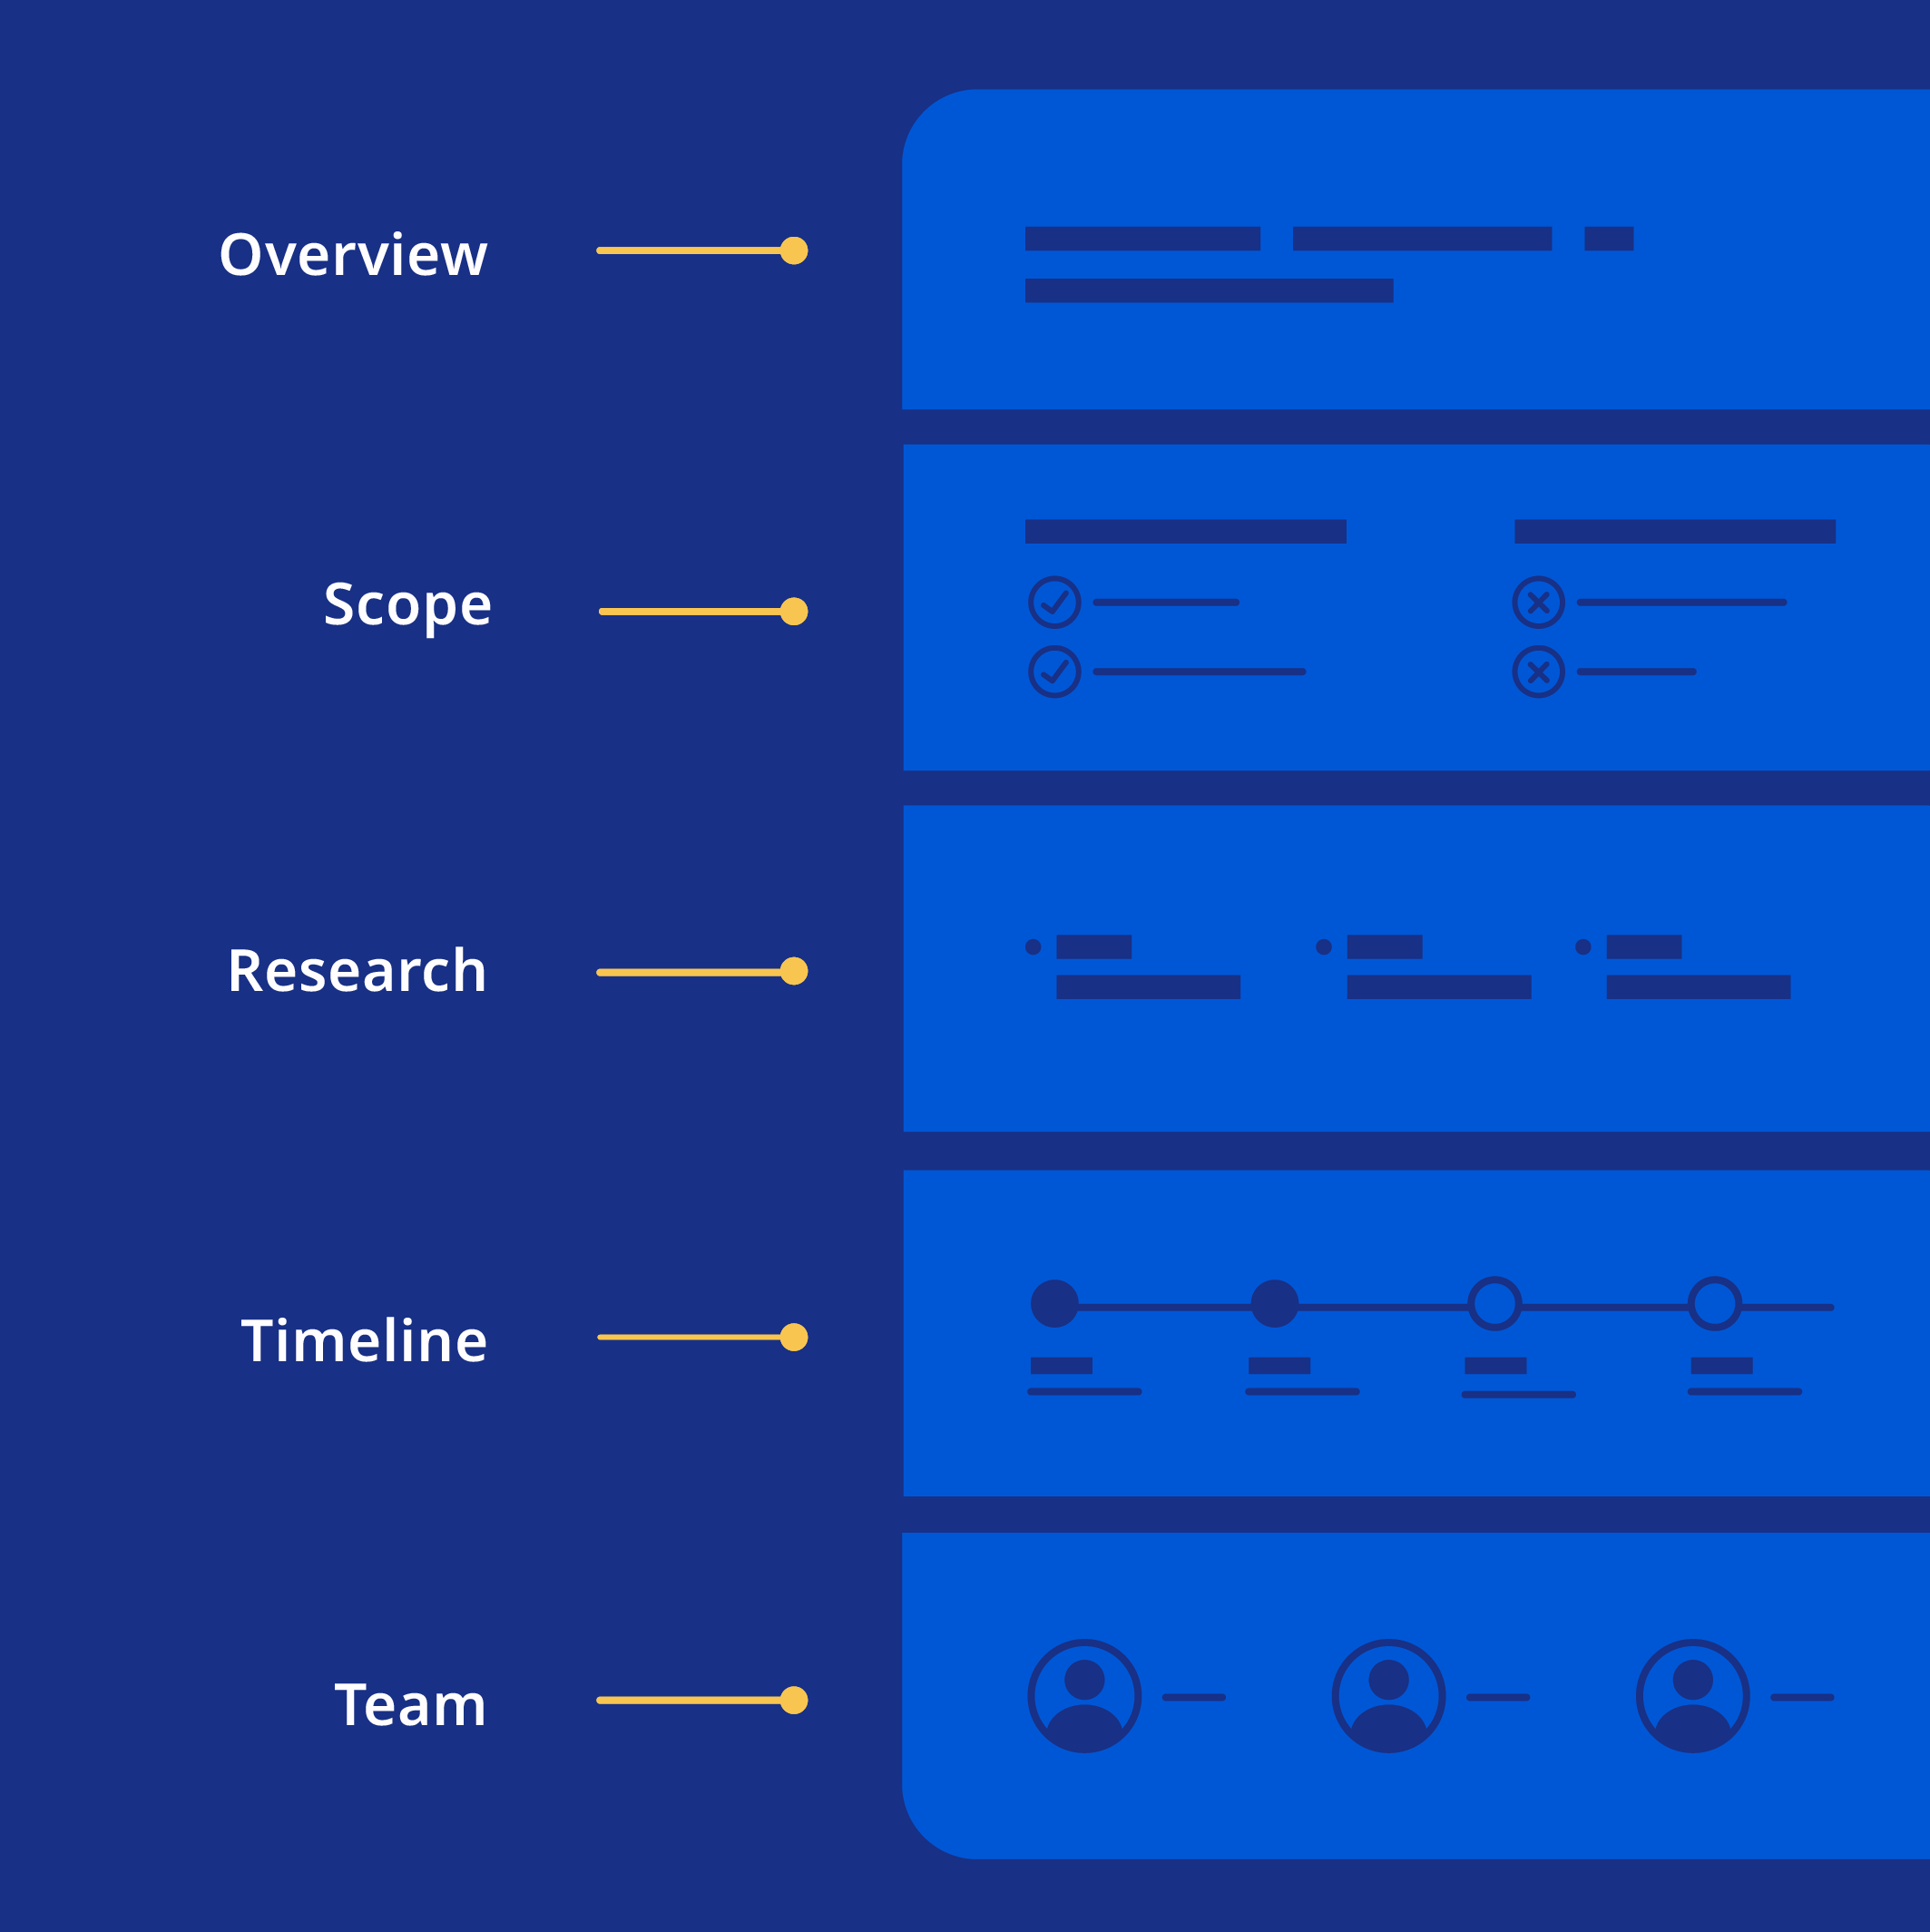 Diagram of a project brief with 5 sections labeled: Overview, Scope, Research, Timeline, Team